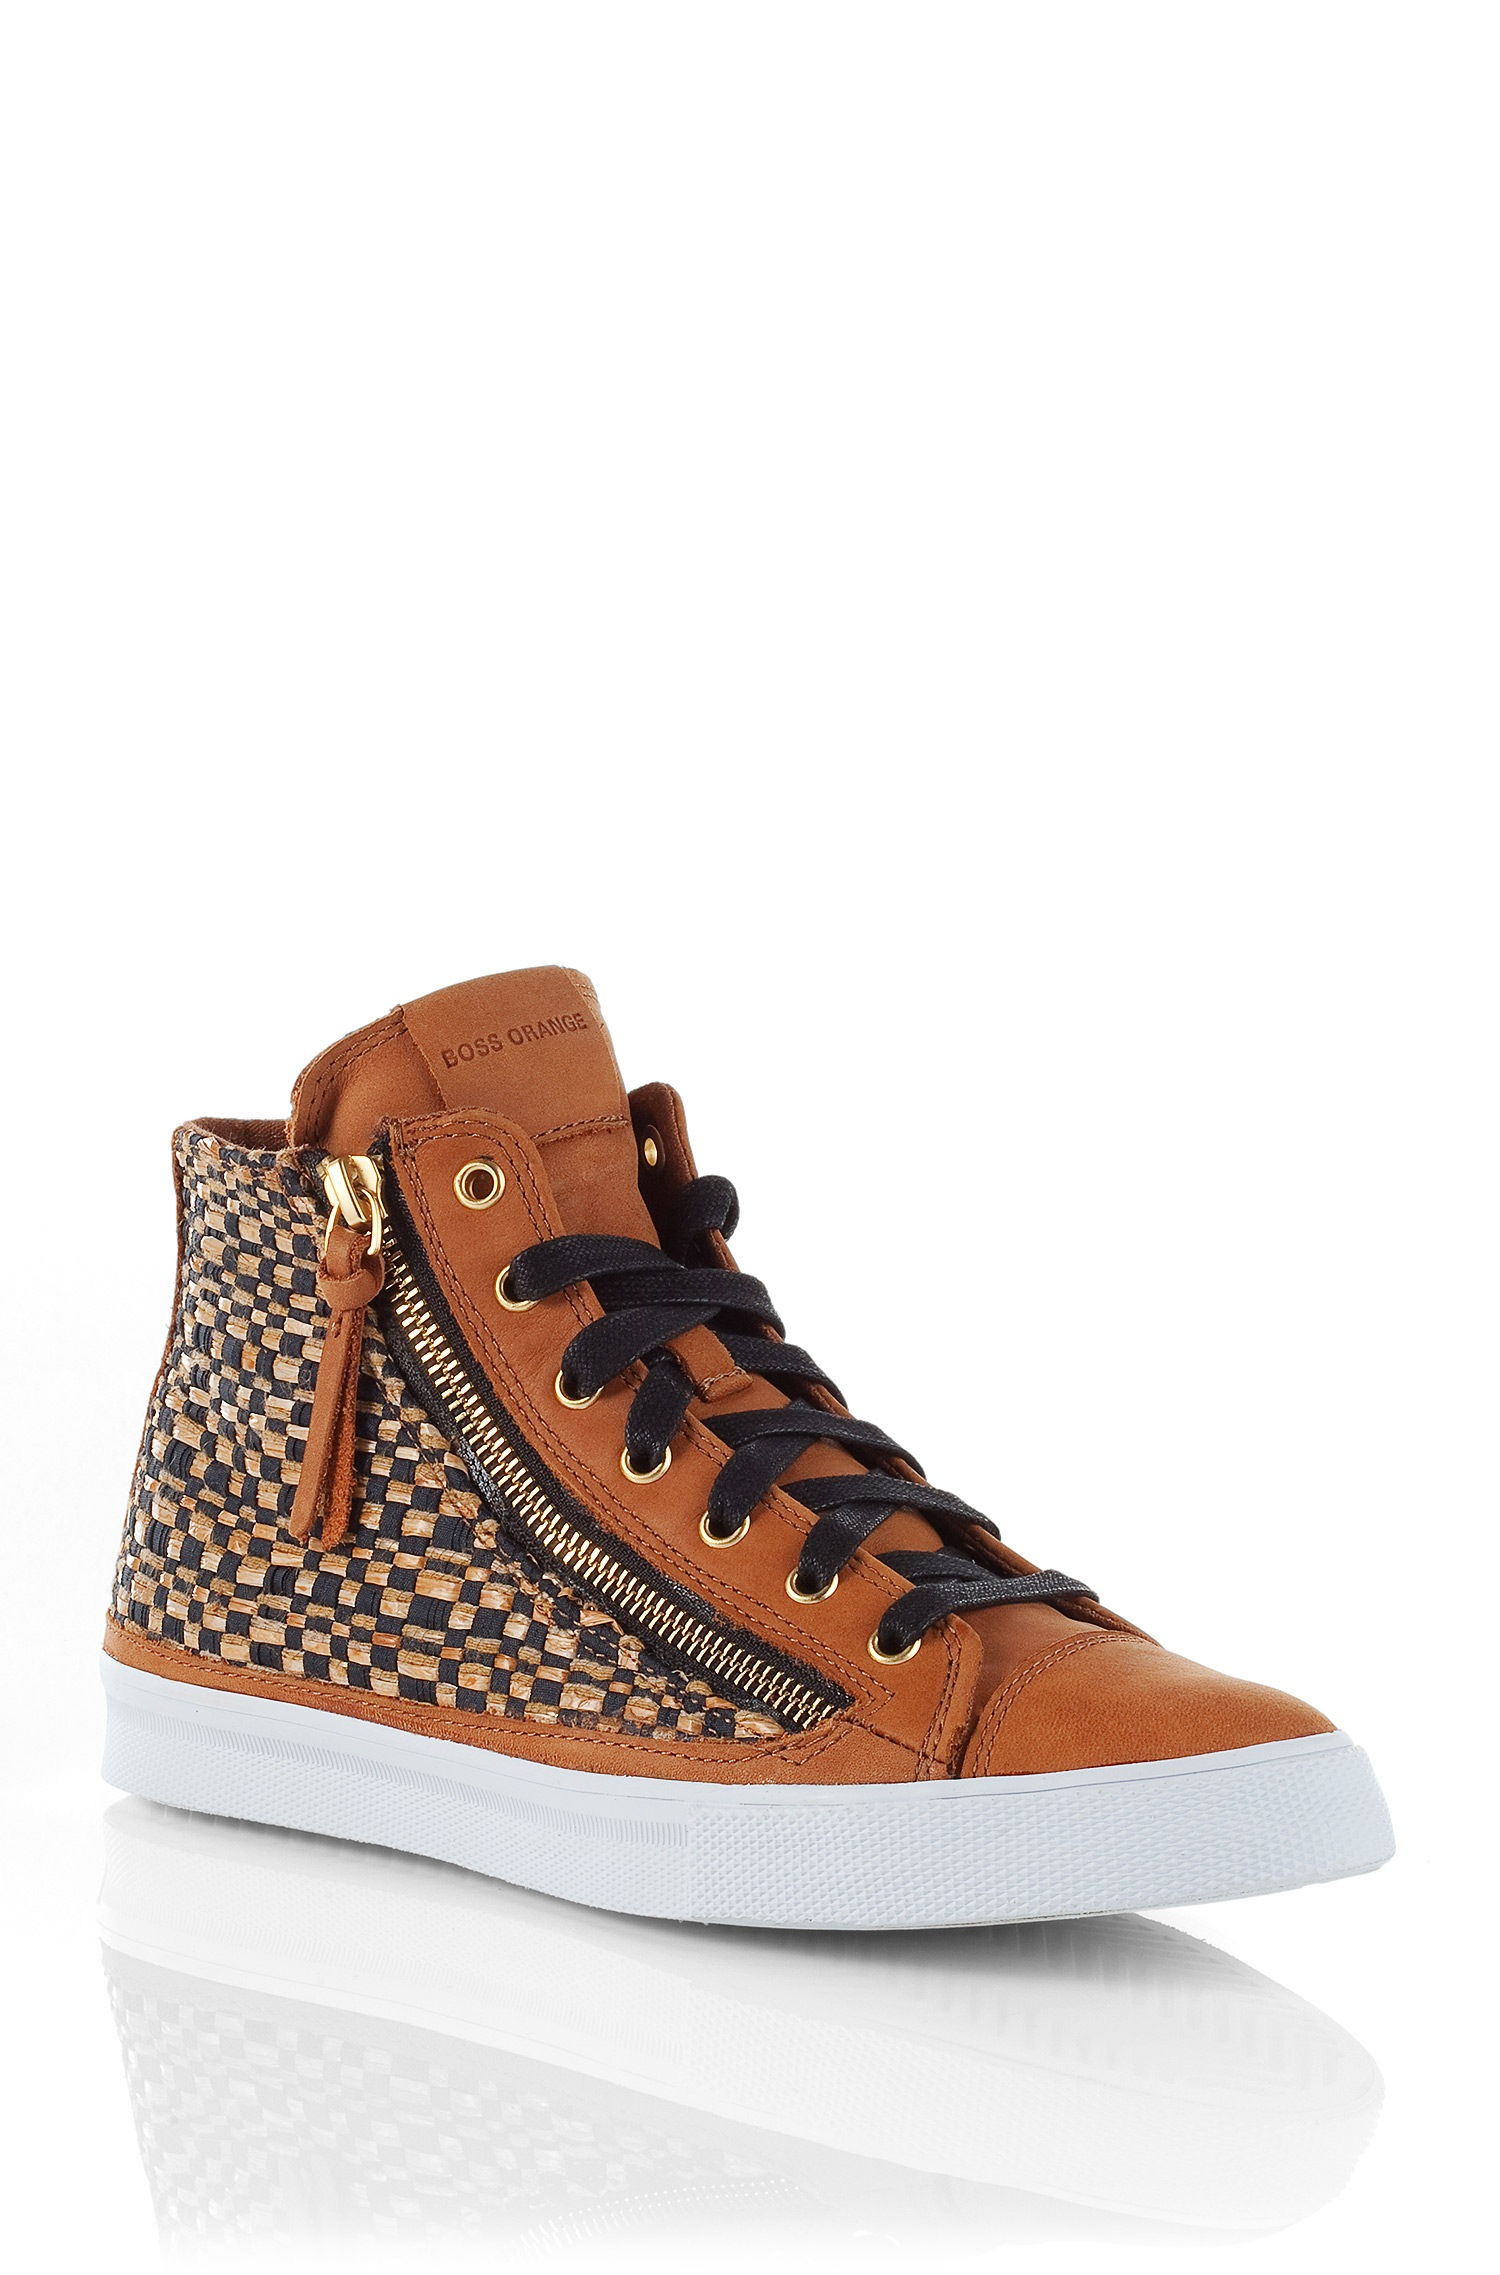 boss orange fabric blend sneakers nycols in brown lyst. Black Bedroom Furniture Sets. Home Design Ideas